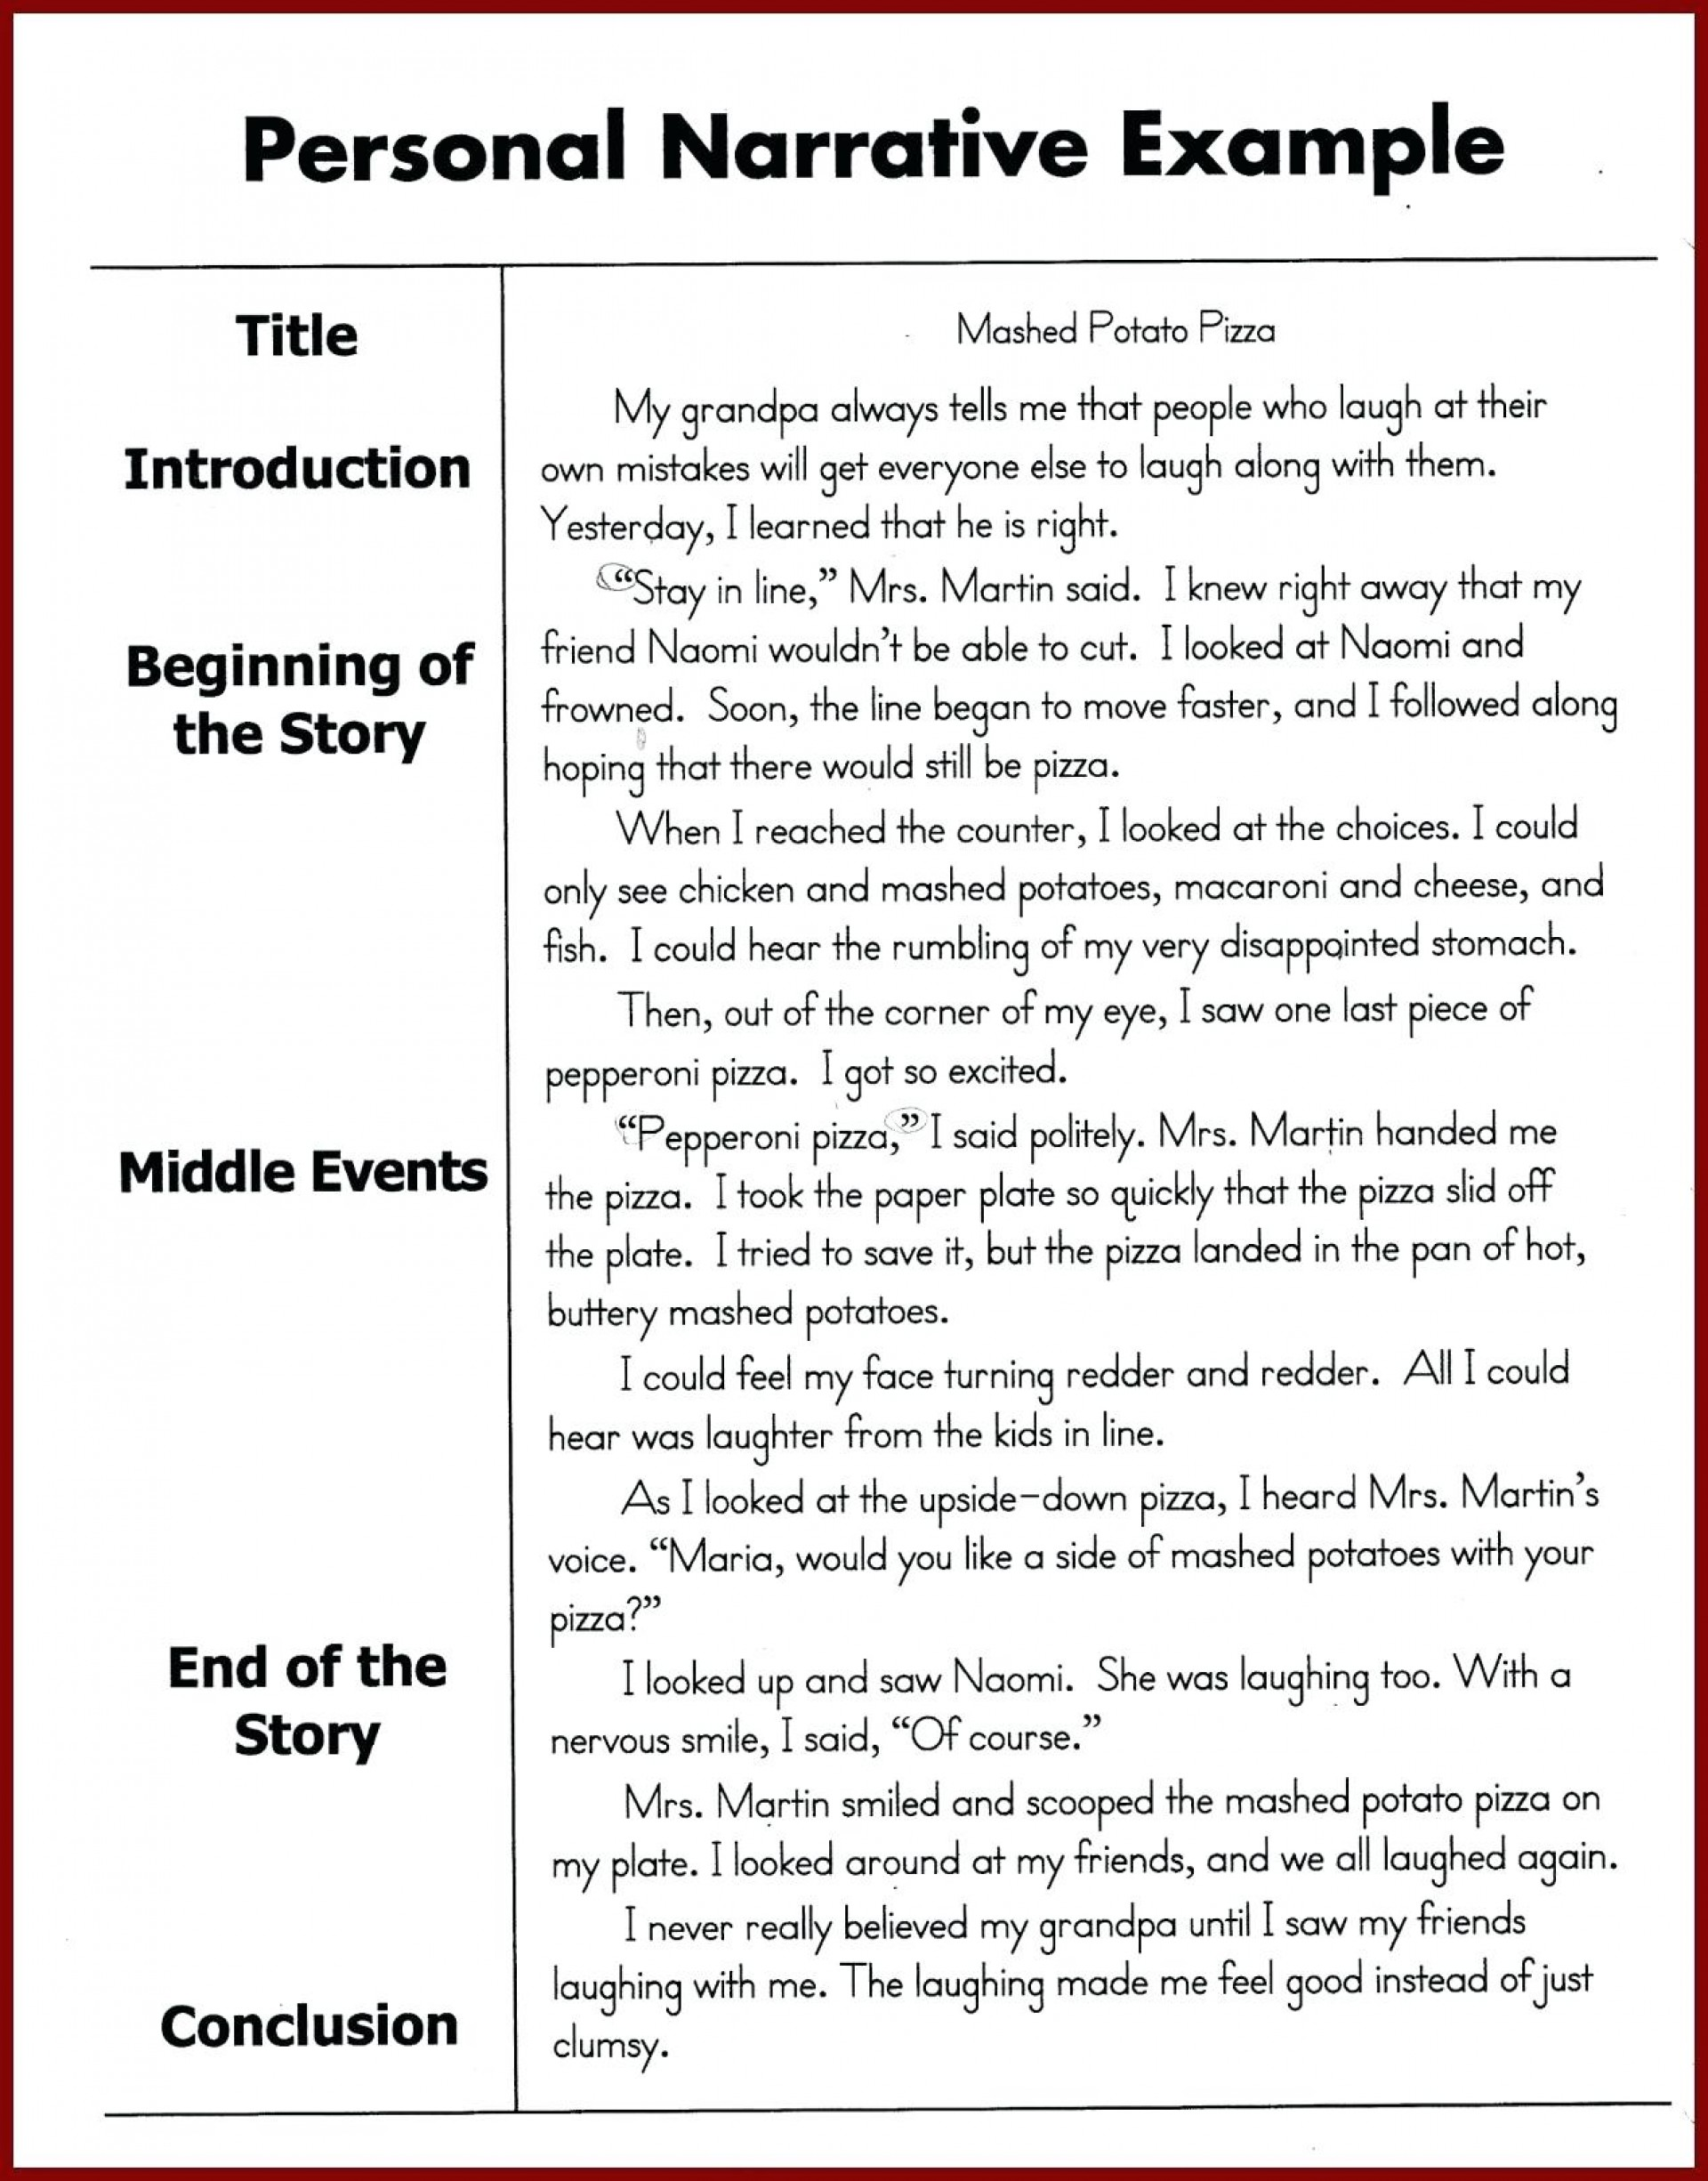 011 How To Write An Autobiographical Essay Example My Autobiography Examples For Grad Writing S Written Of Scholarship College Graduate School Job Incredible A 1920